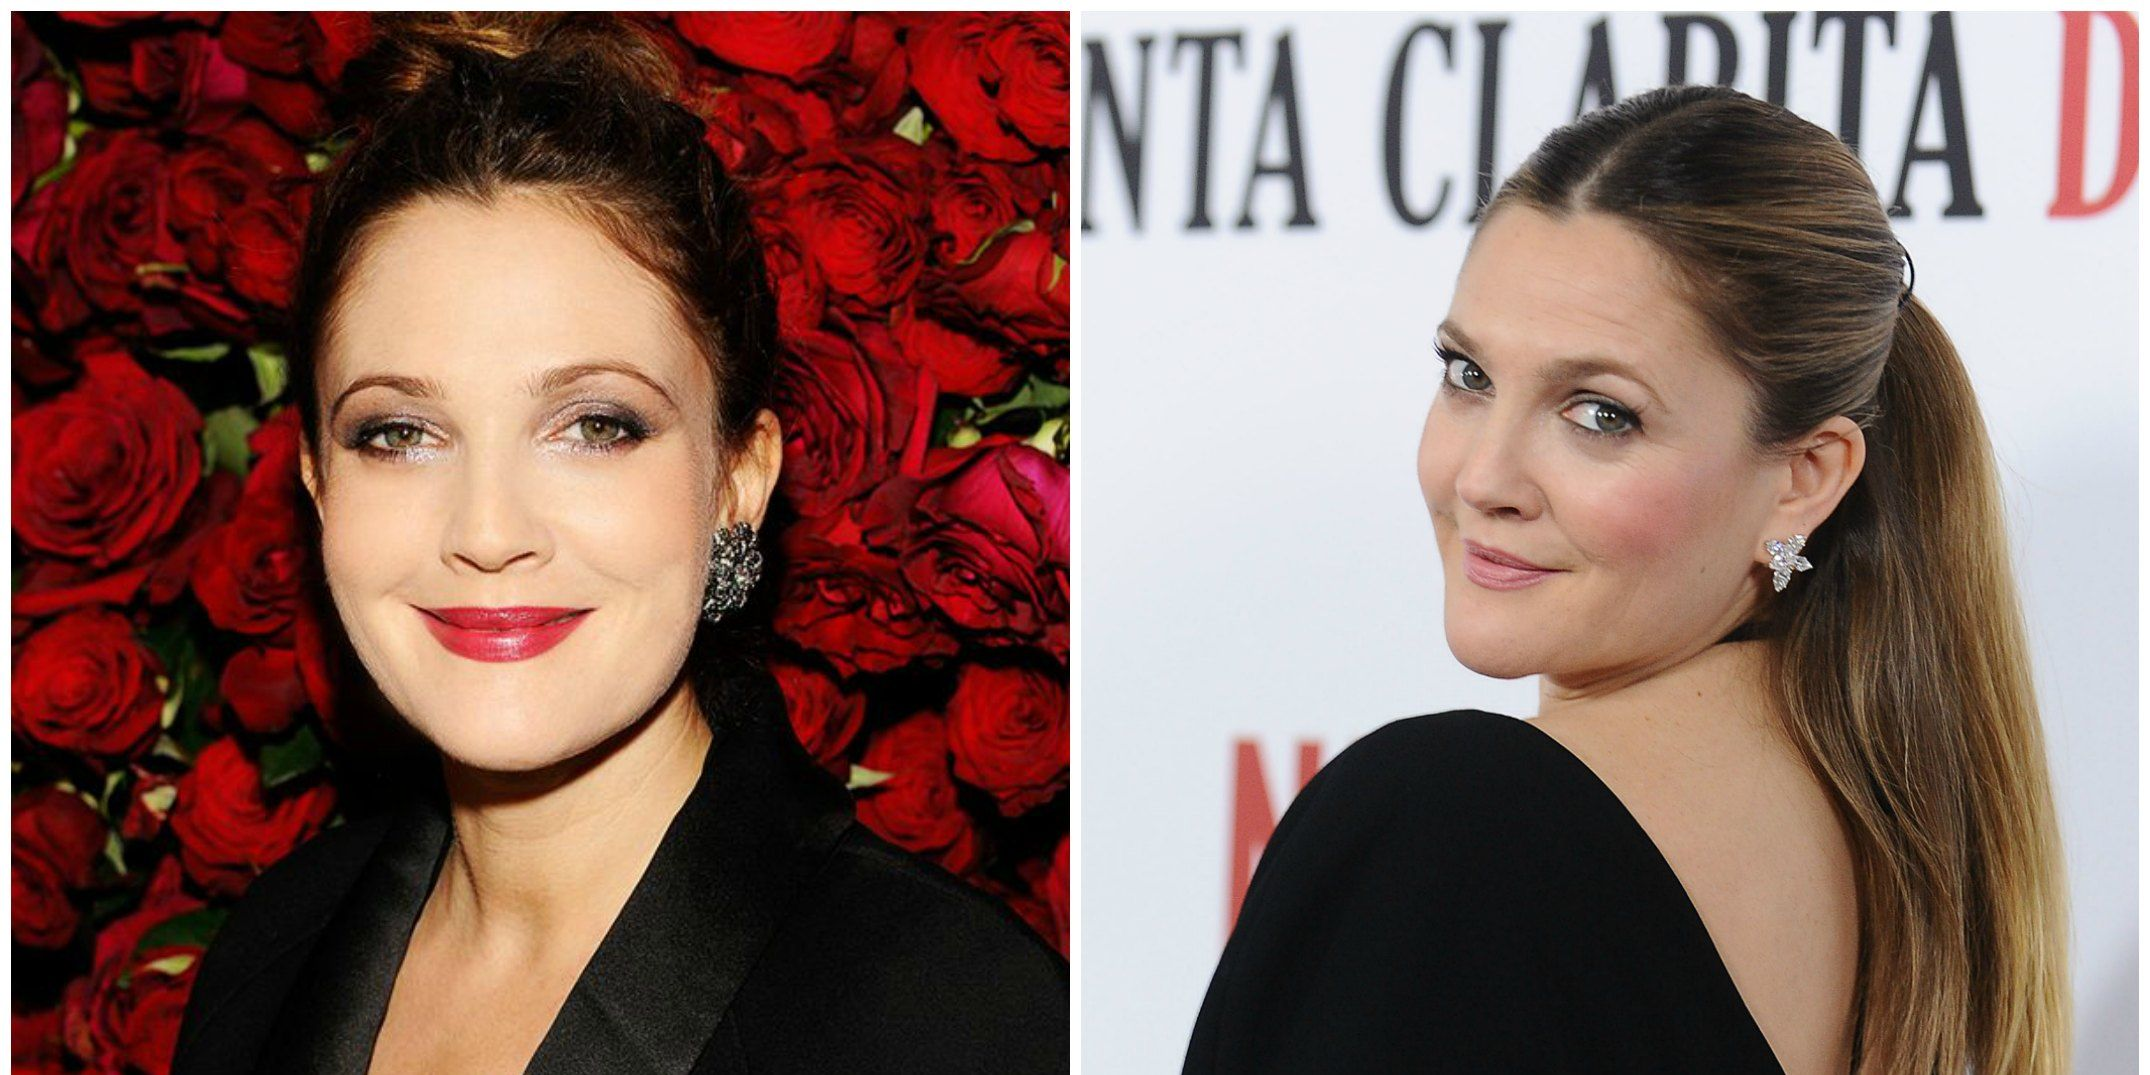 Drew Barrymore Metallic eyes and berry-bright lips were a mainstay in the '90s and early '00s, and Drew rocked them like no other. But the warmer, more neutral tones that the Flower beauty founder wears now are to die for.